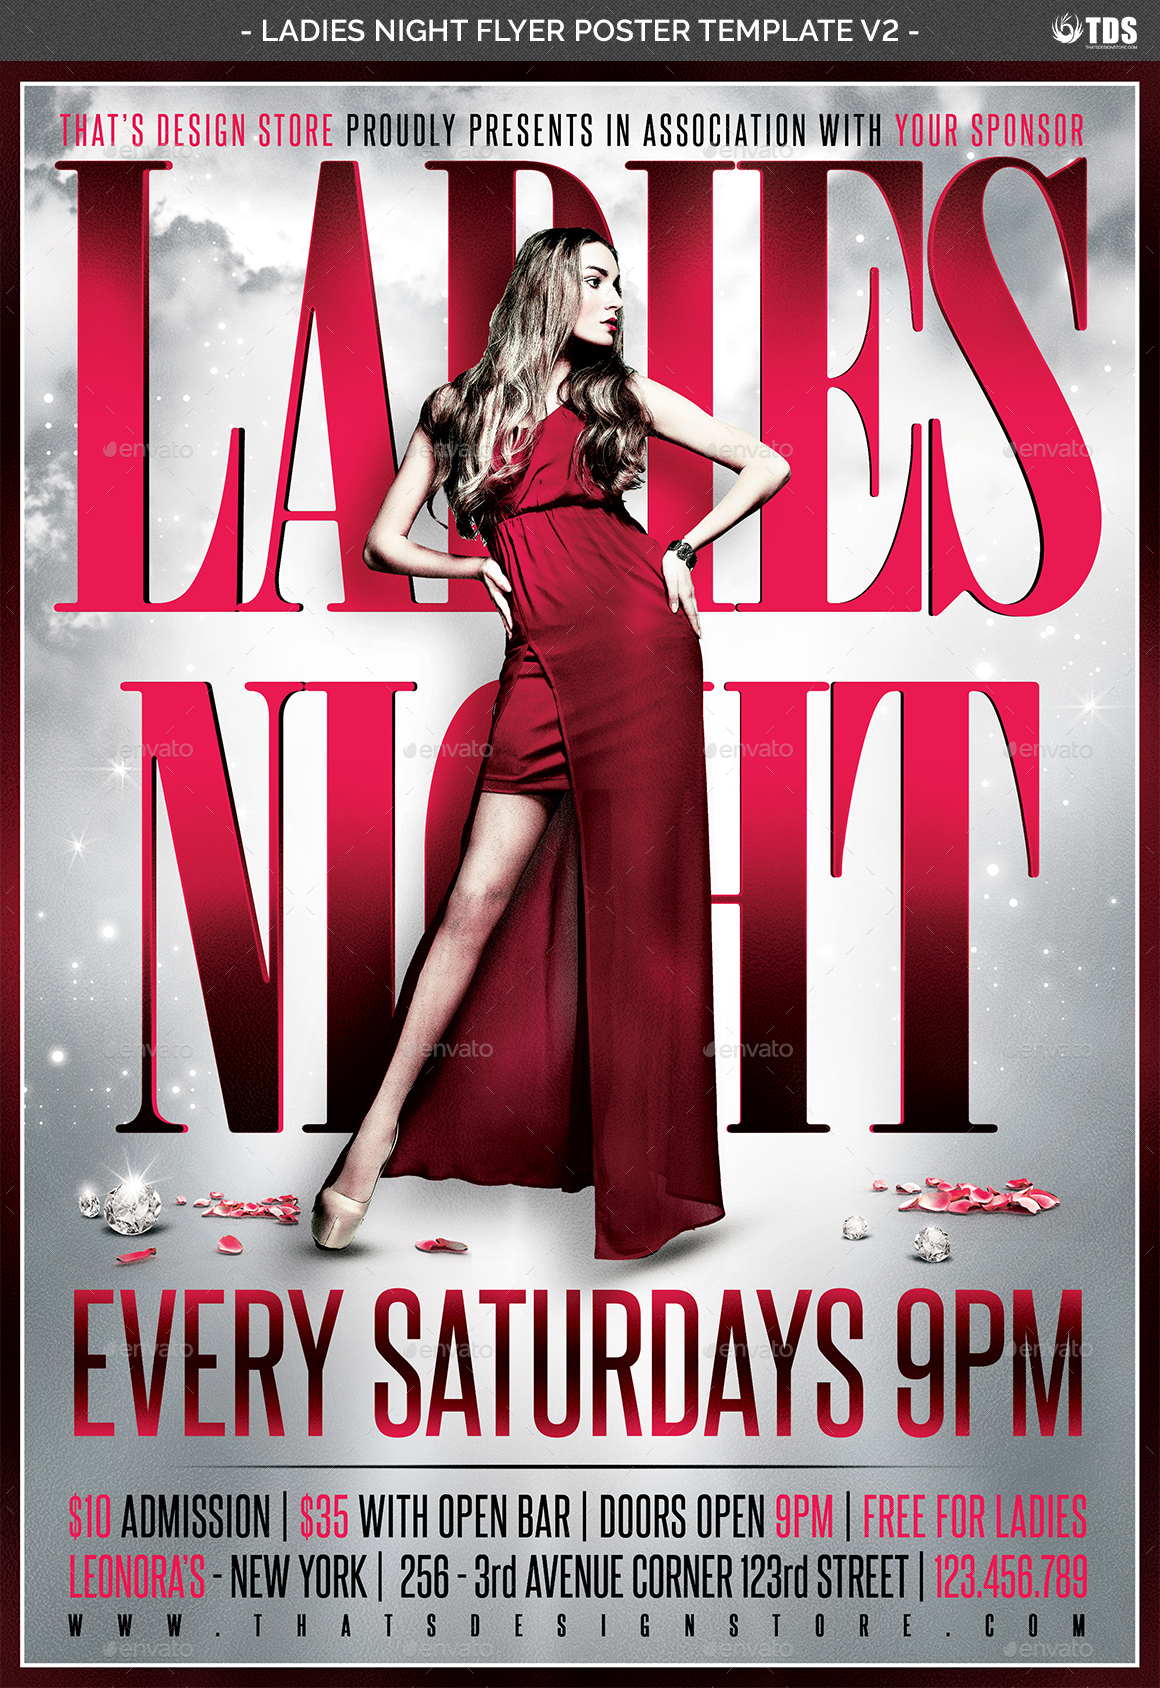 ladies night flyer poster template v2 by lou606